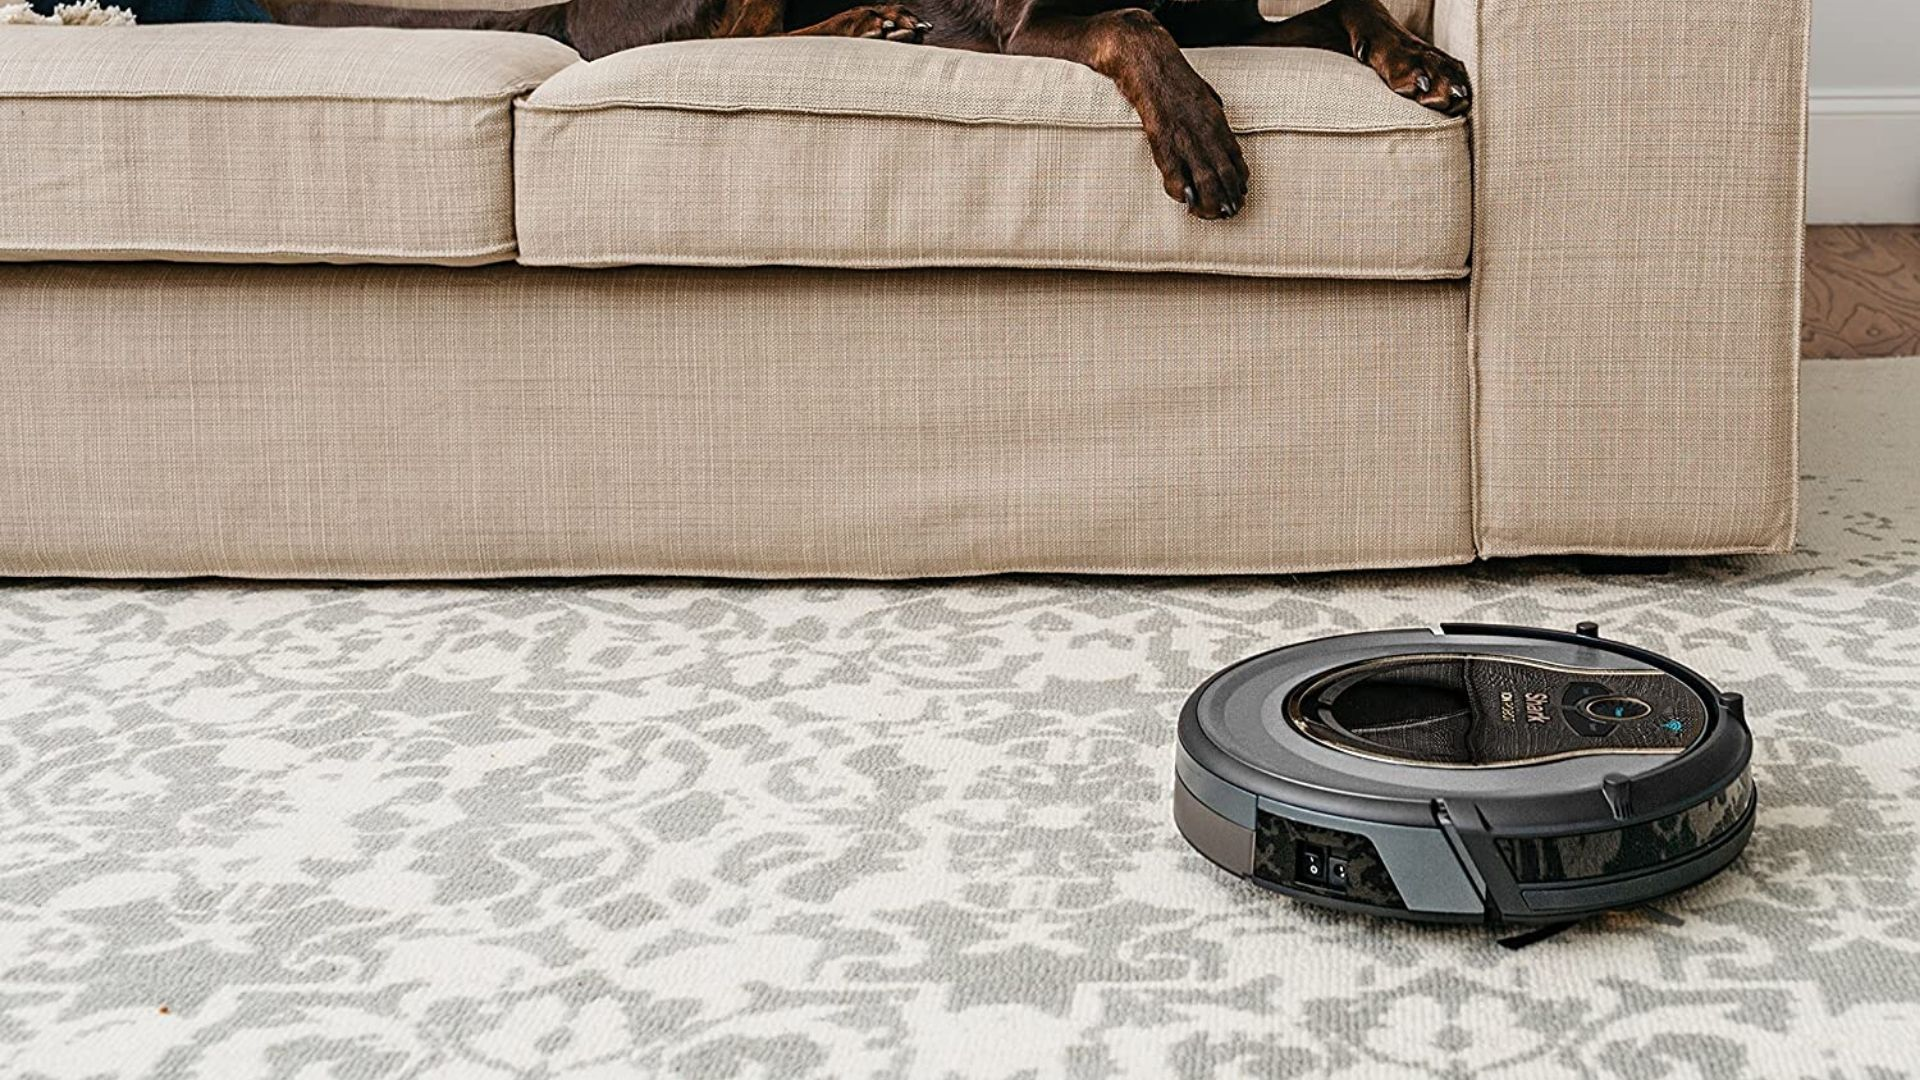 picture of dog sitting on sofa with carpet underneath being cleaned by SHARK ION Robot Vacuum R75 WiFi-Connected, Voice Control Dual-Action Robotic Vacuum Carpet and Hard Floor Cleaner, Works with Alexa (RV750)